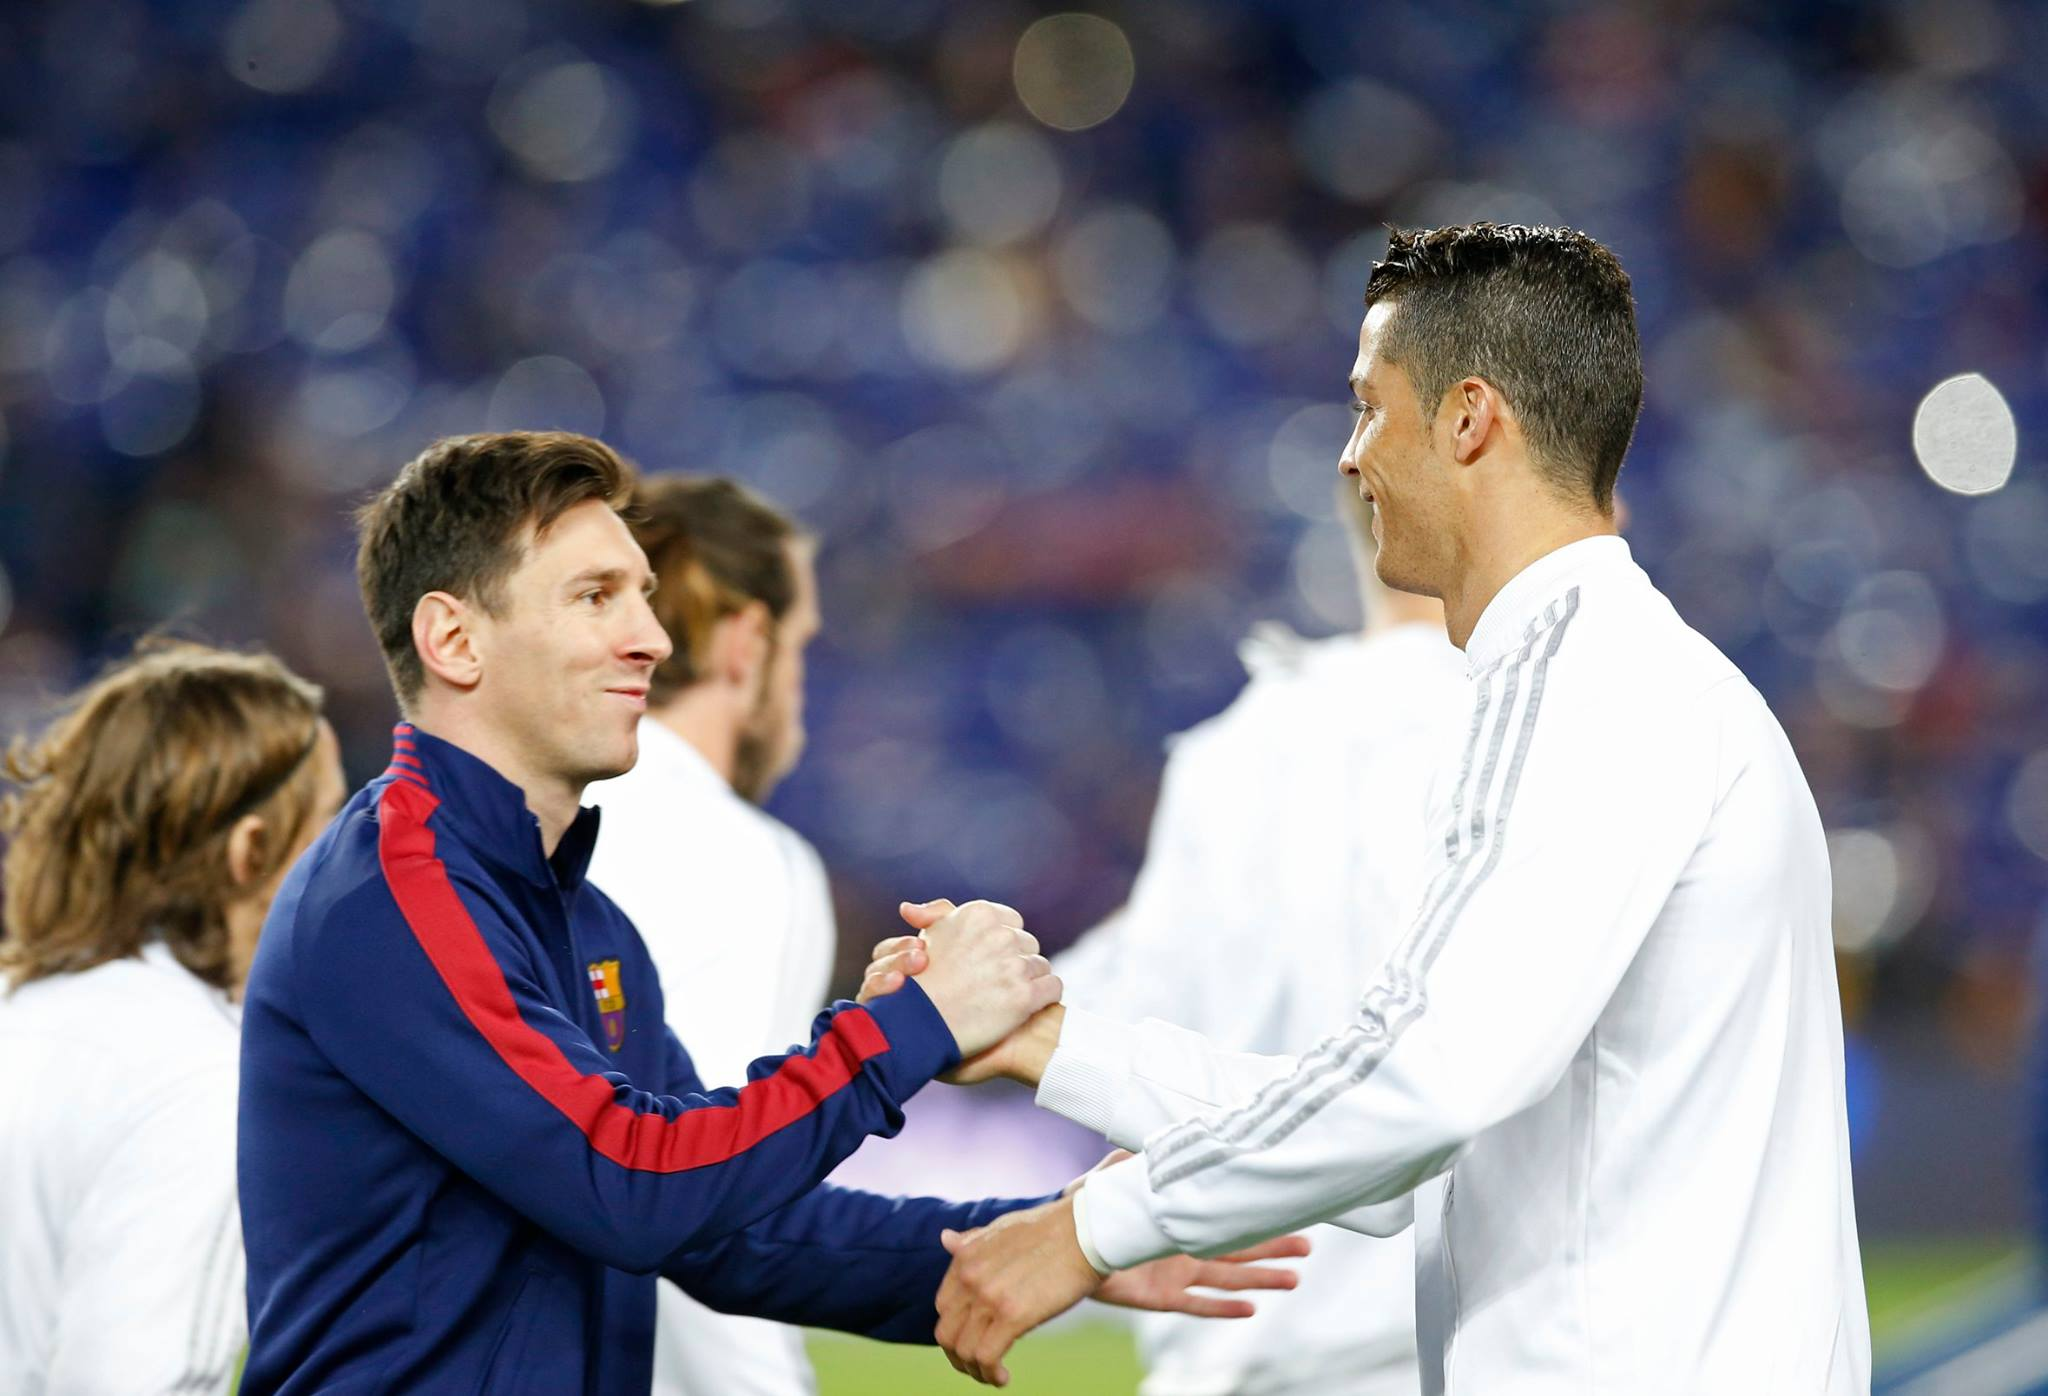 Lionel Messi and Cristiano Ronaldo friends in El Clasico between Barcelona and Real Madrid in 2016